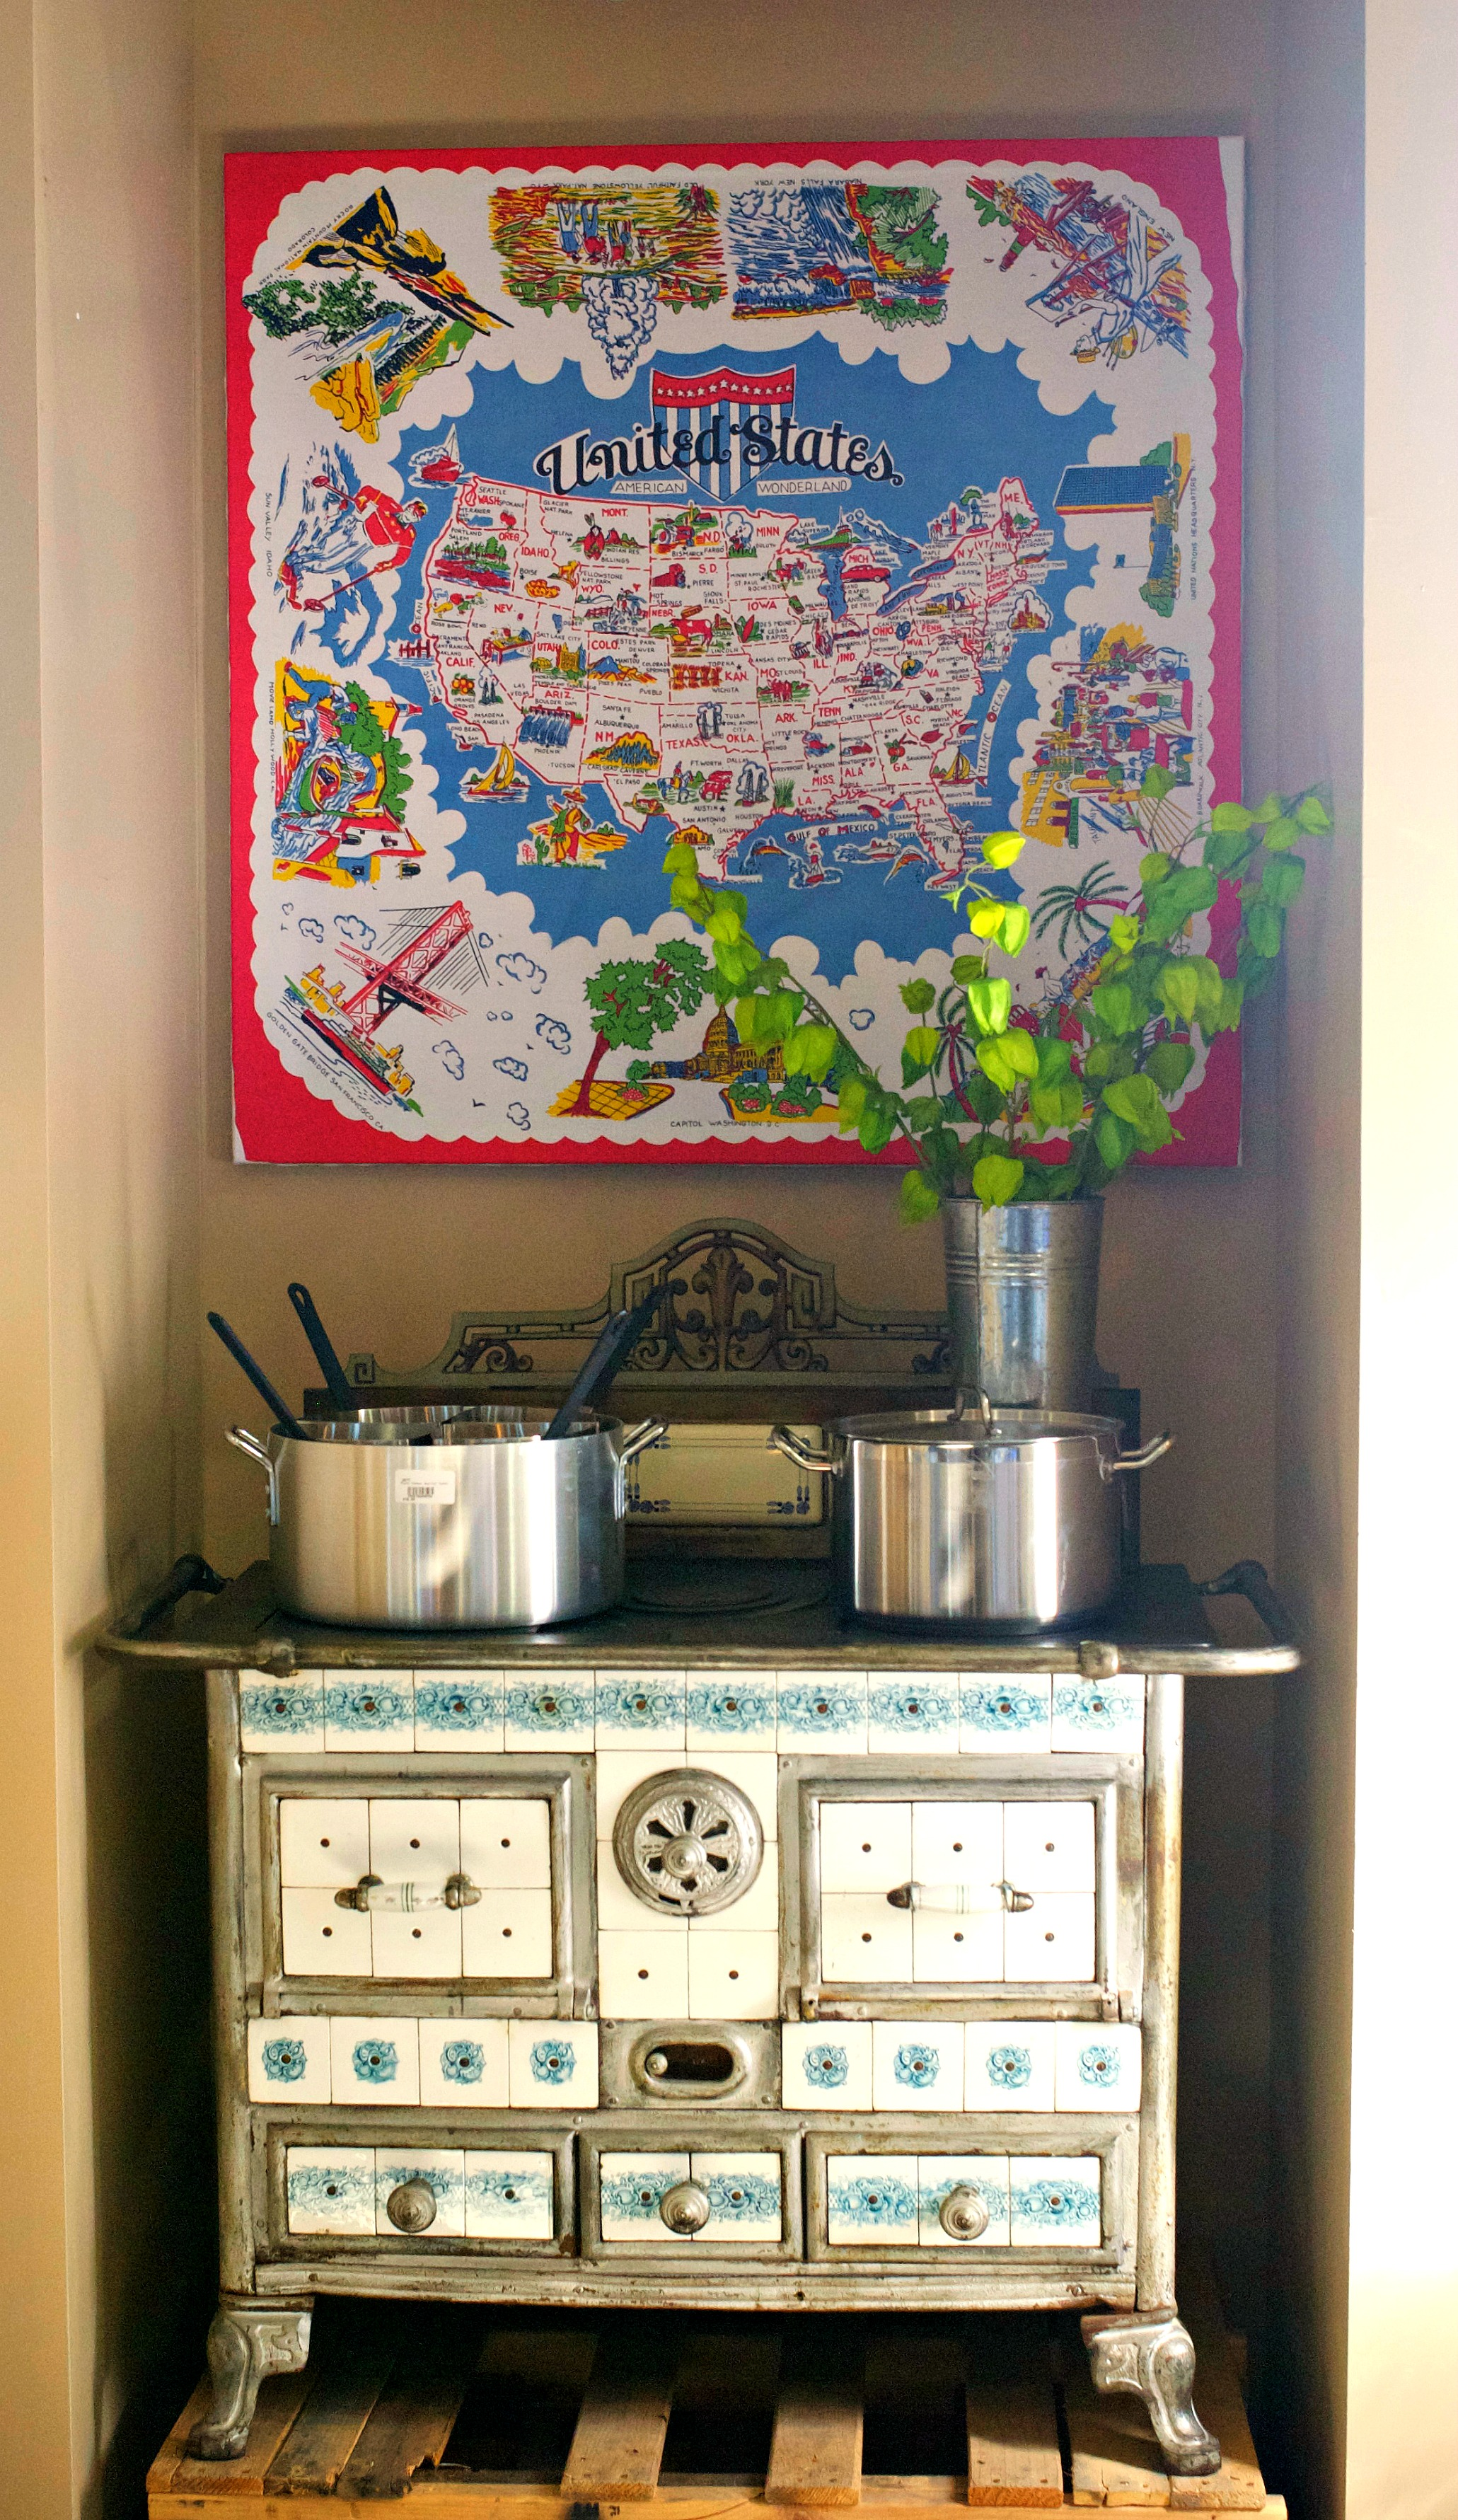 Surfas old stove